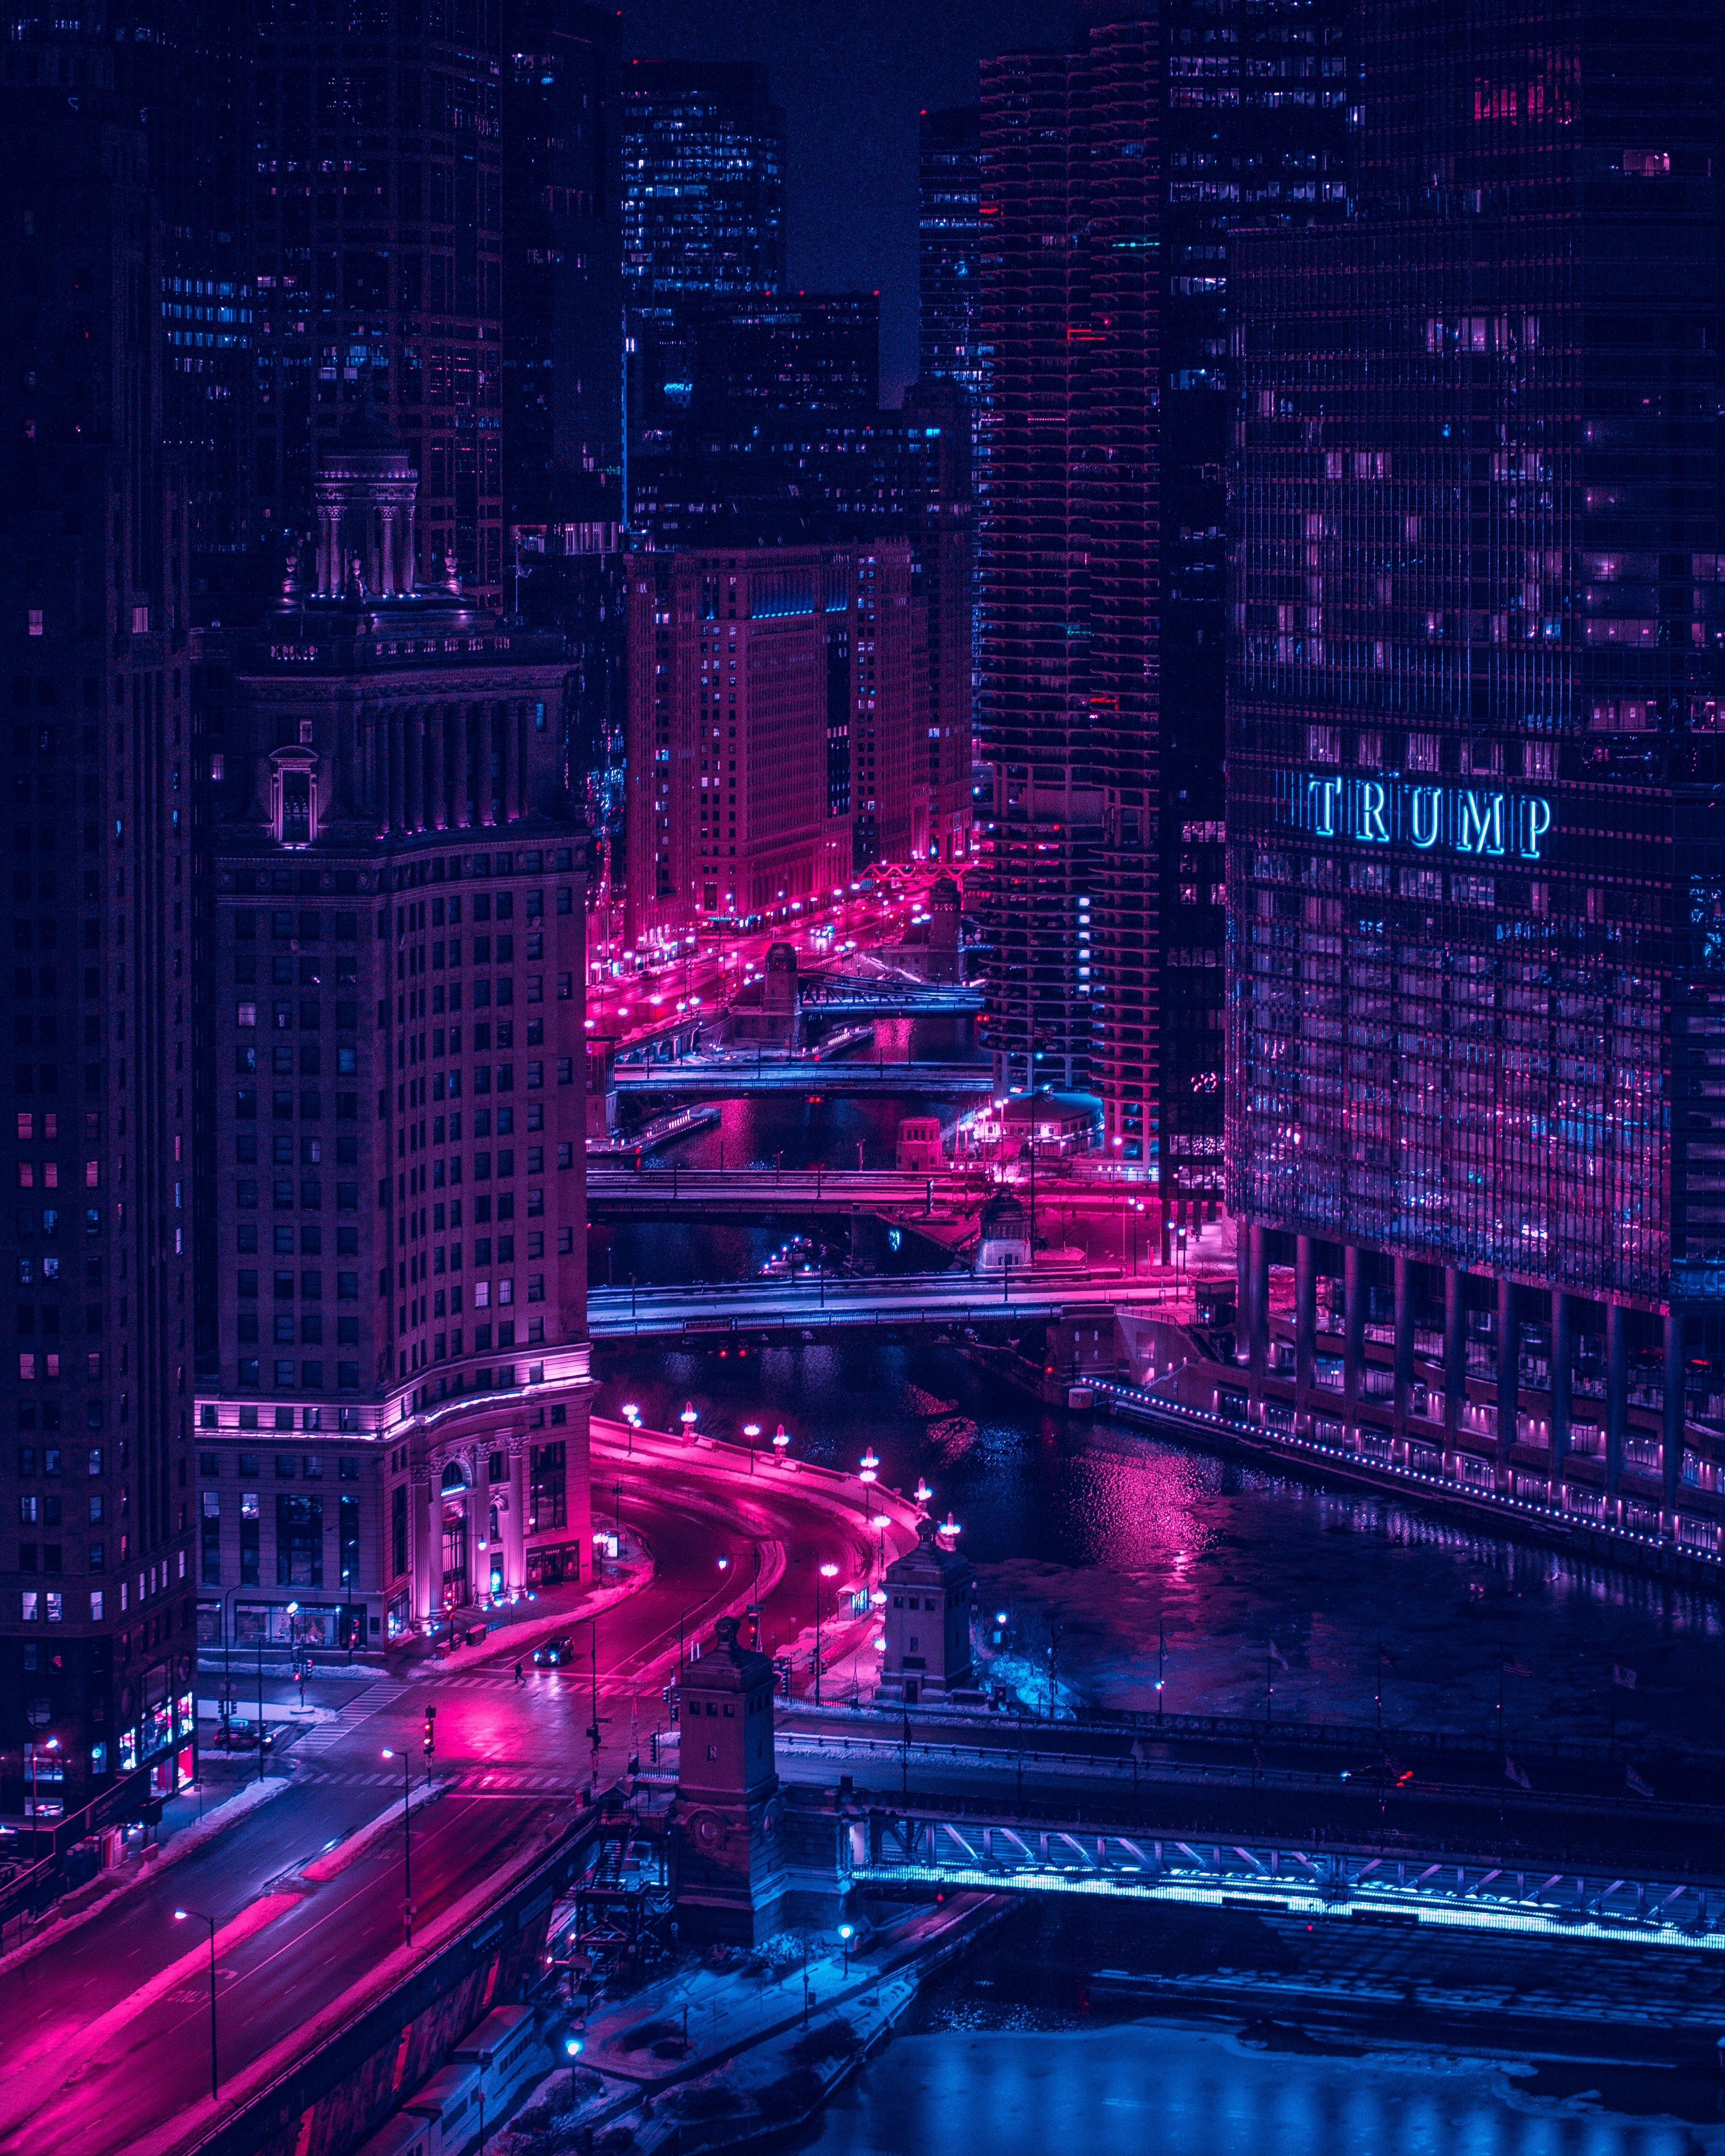 Artist Unknown Outrun Vapor Wave Style Photograph Of The Chicago Circuit Board Animation V6 By Motionworks Videohive River